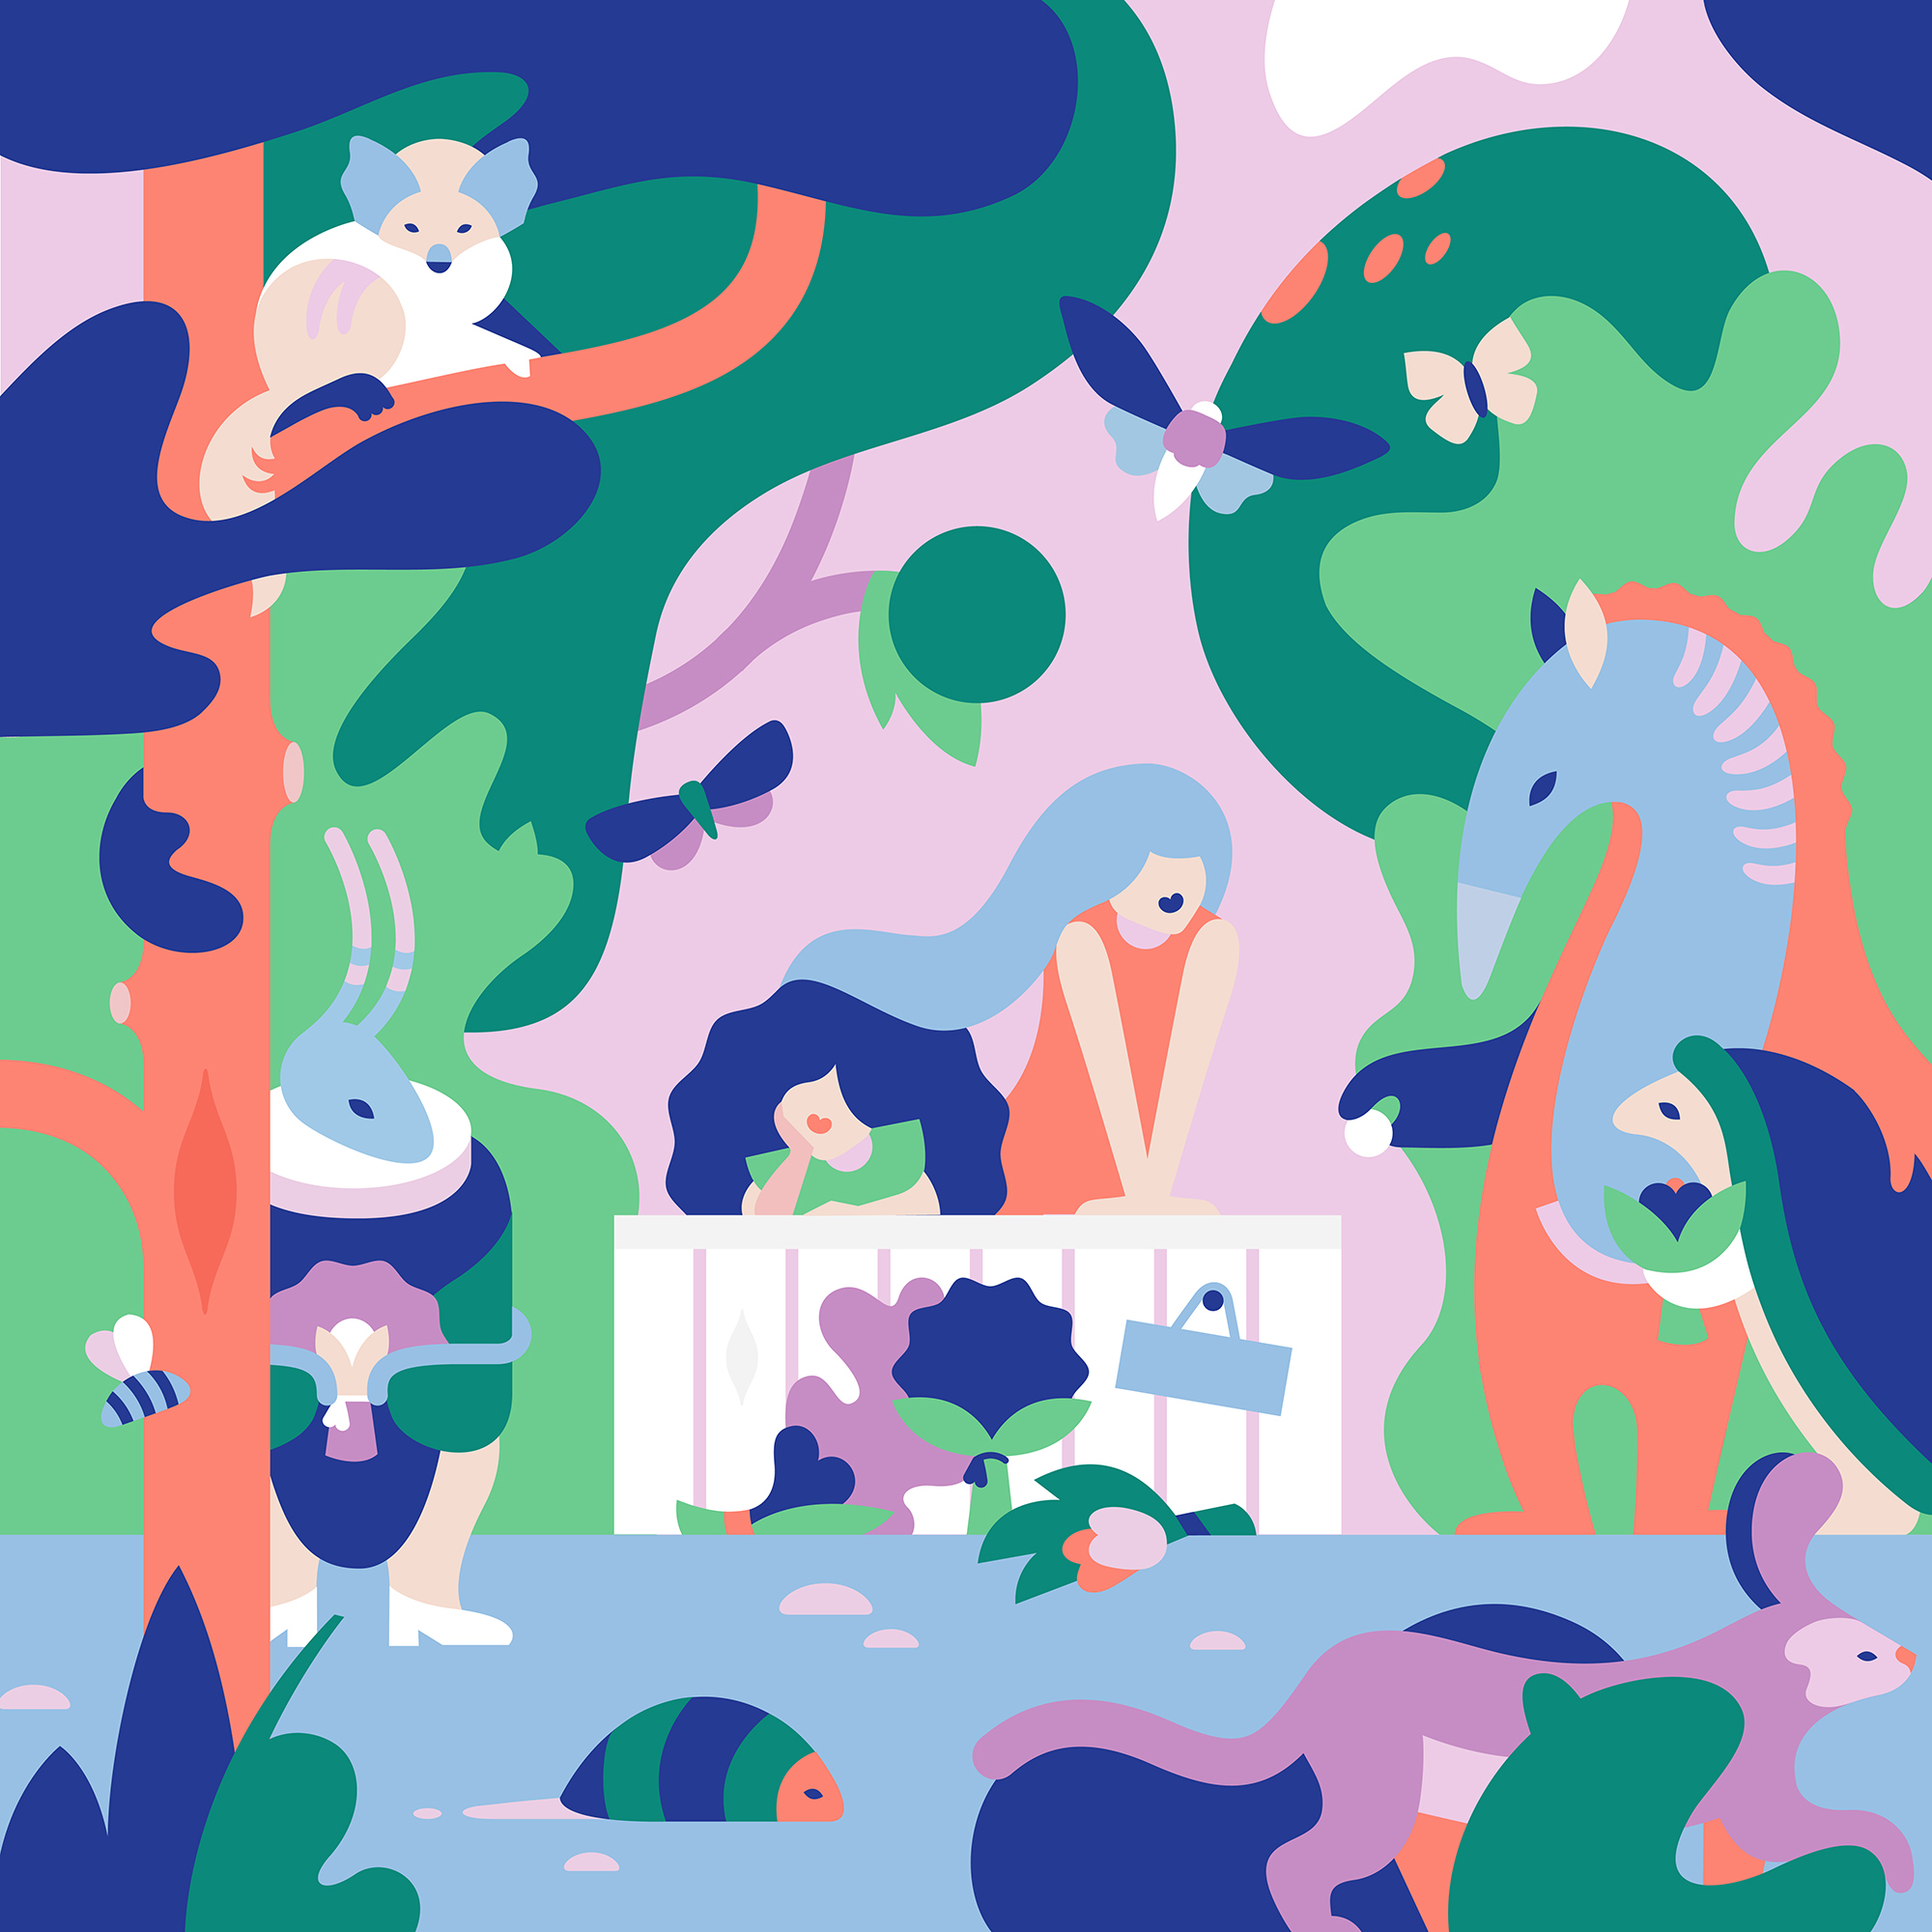 China Illustration Biennale by Janine Rewell.